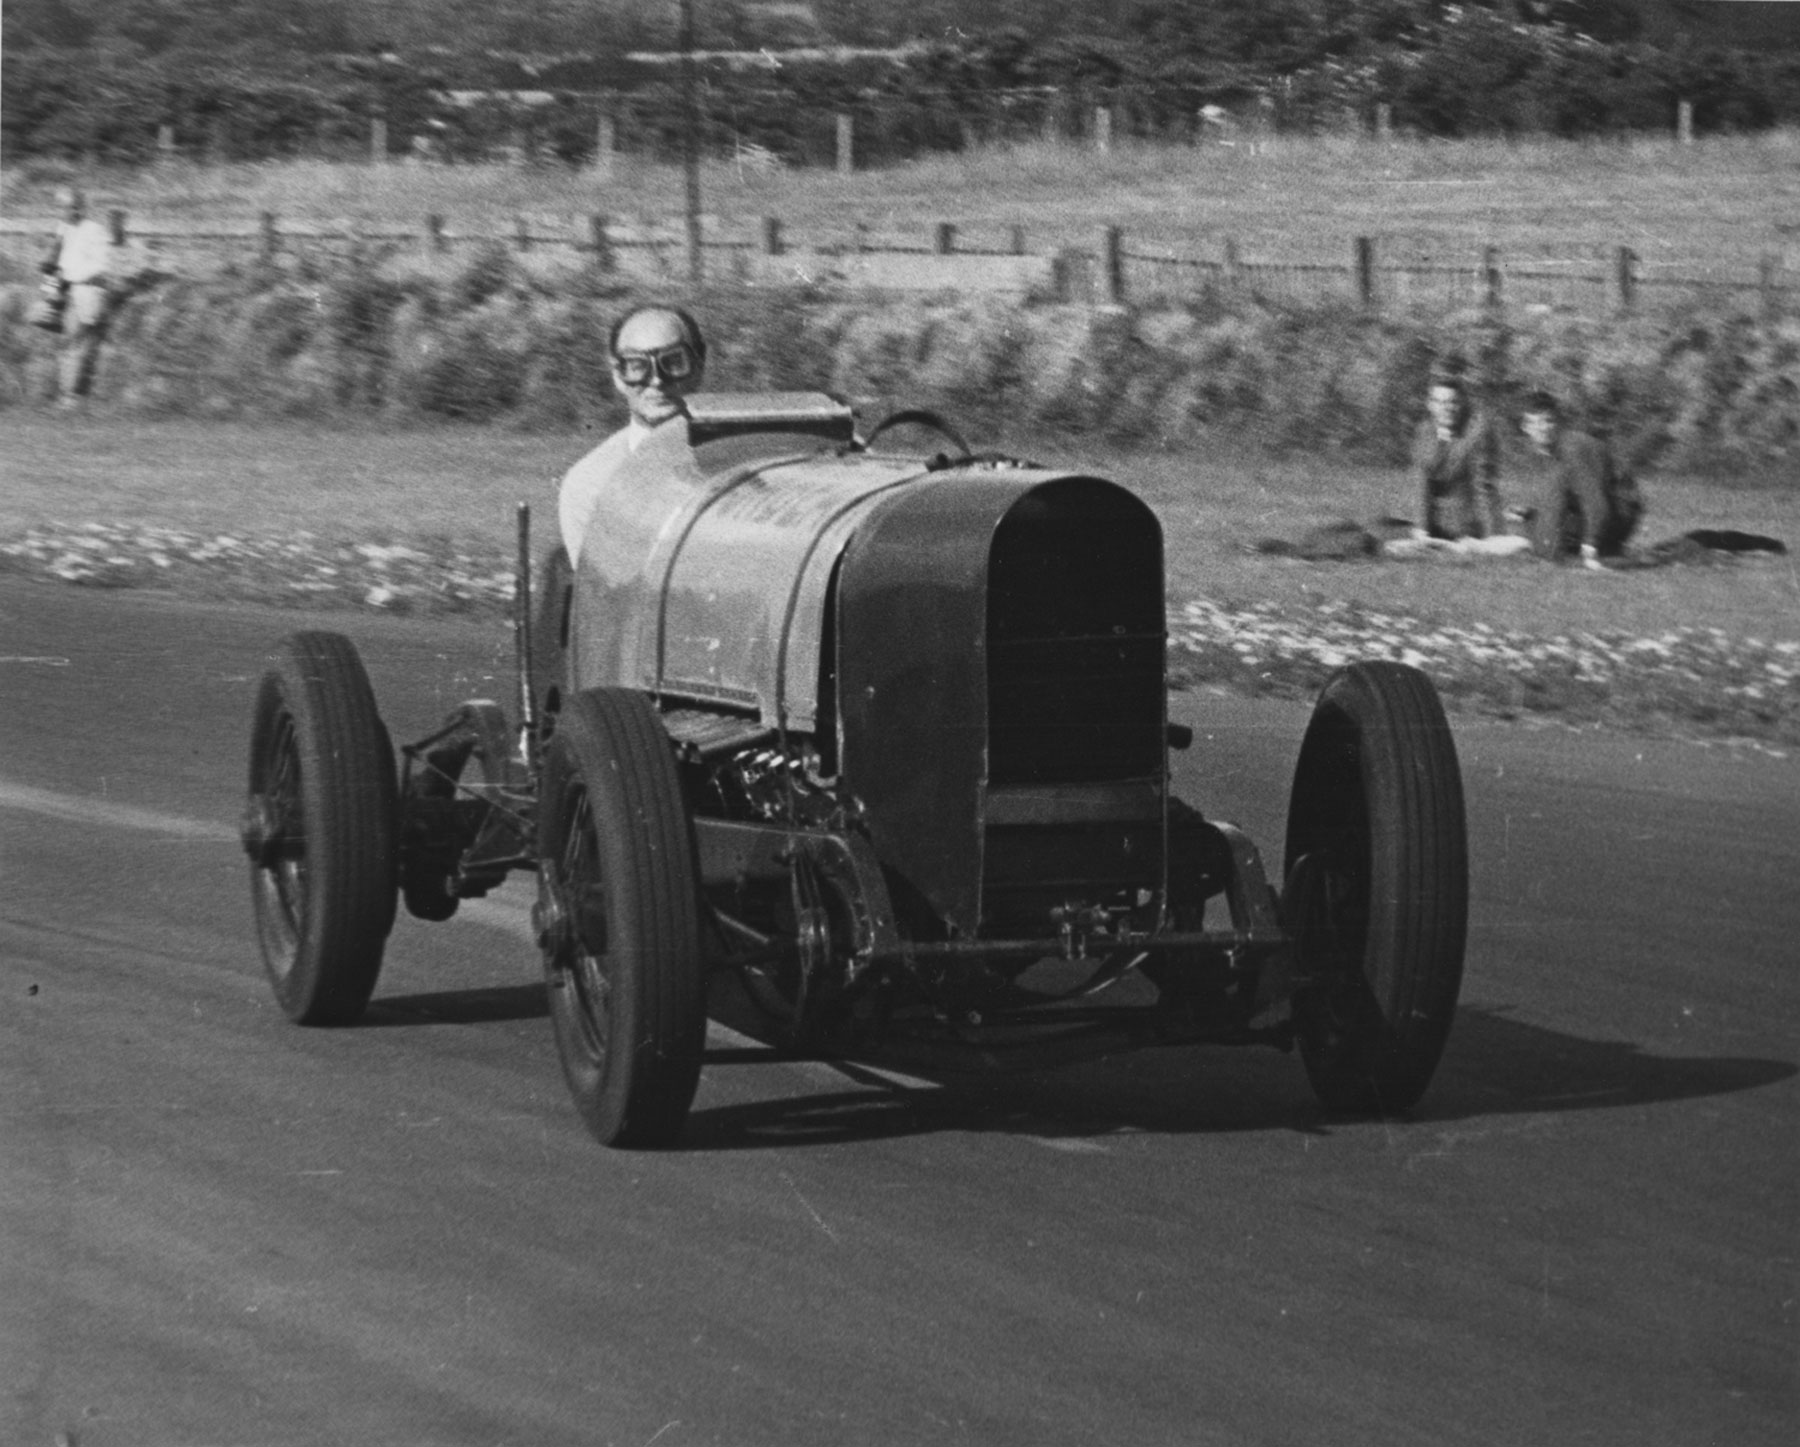 Lord Montagu in Sunbeam at Goodwood 1962